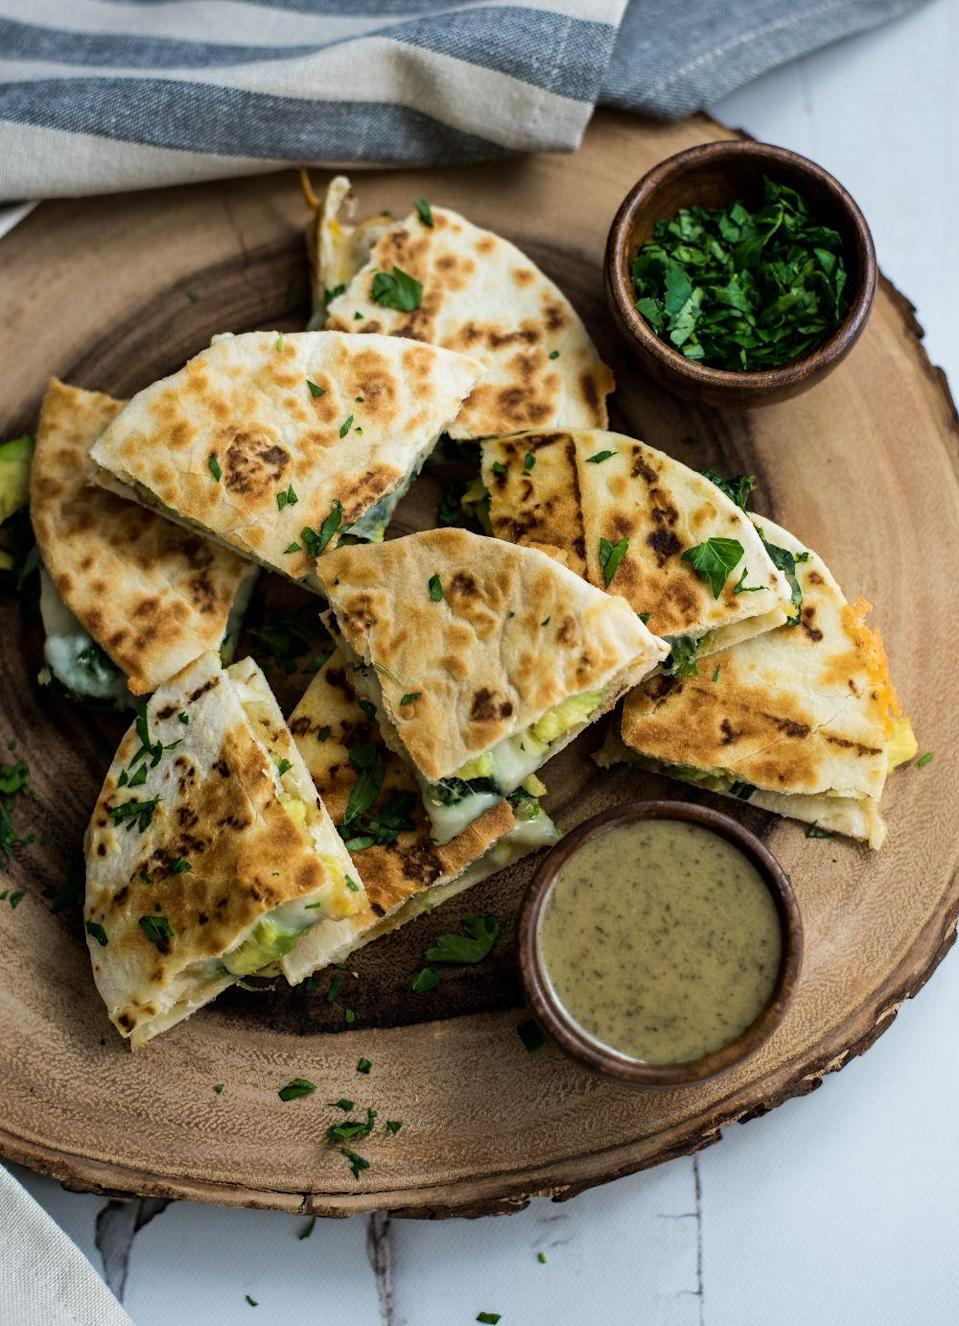 "<p>You can make this delicious finger food with frozen shrimp and spinach to make your Super Bowl preparations a little bit easier.</p><p><strong>Get the recipe at <a href=""http://cookingandbeer.com/2017/02/mini-spinach-and-shrimp-quesadillas-with-avocado/"" rel=""nofollow noopener"" target=""_blank"" data-ylk=""slk:Cooking and Beer"" class=""link rapid-noclick-resp"">Cooking and Beer</a>.</strong></p><p><strong><a class=""link rapid-noclick-resp"" href=""https://www.amazon.com/Farberware-Performance-Nonstick-Aluminum-11-Inch/dp/B00FGUXFSI/?tag=syn-yahoo-20&ascsubtag=%5Bartid%7C10050.g.2966%5Bsrc%7Cyahoo-us"" rel=""nofollow noopener"" target=""_blank"" data-ylk=""slk:SHOP GRIDDLE PANS"">SHOP GRIDDLE PANS</a><br></strong></p>"